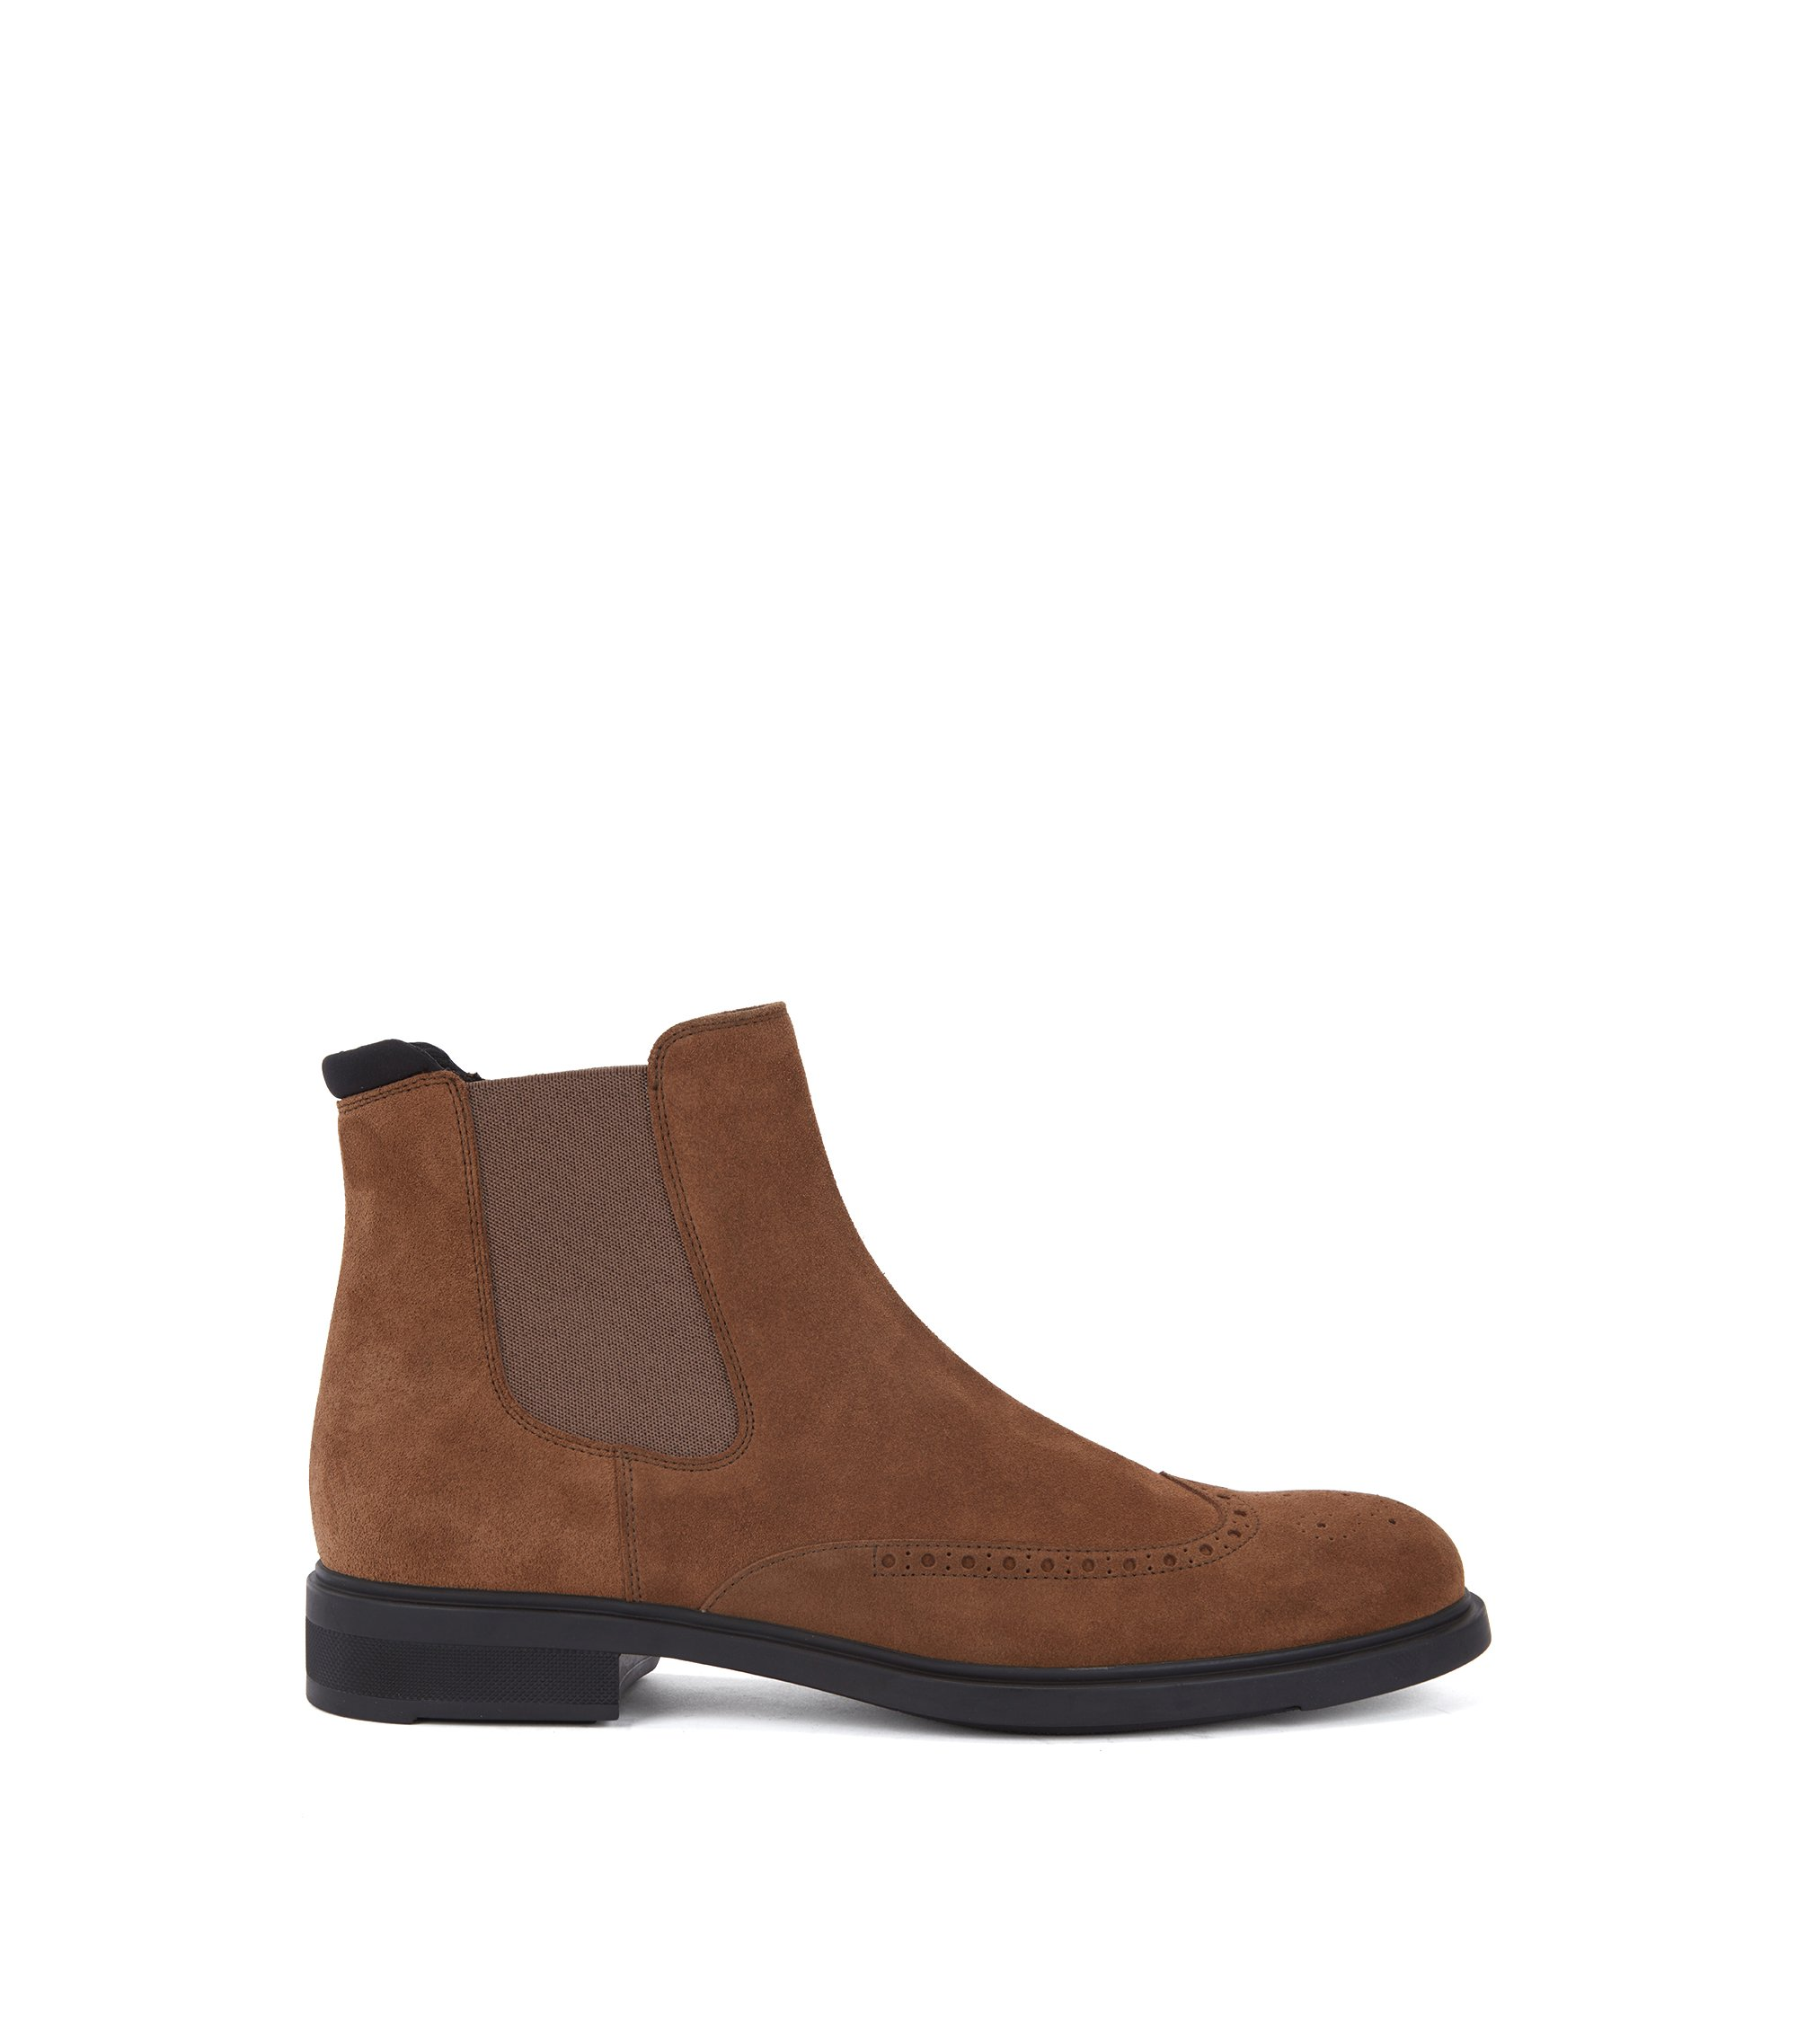 Bottines Chelsea en daim imperméable, Marron